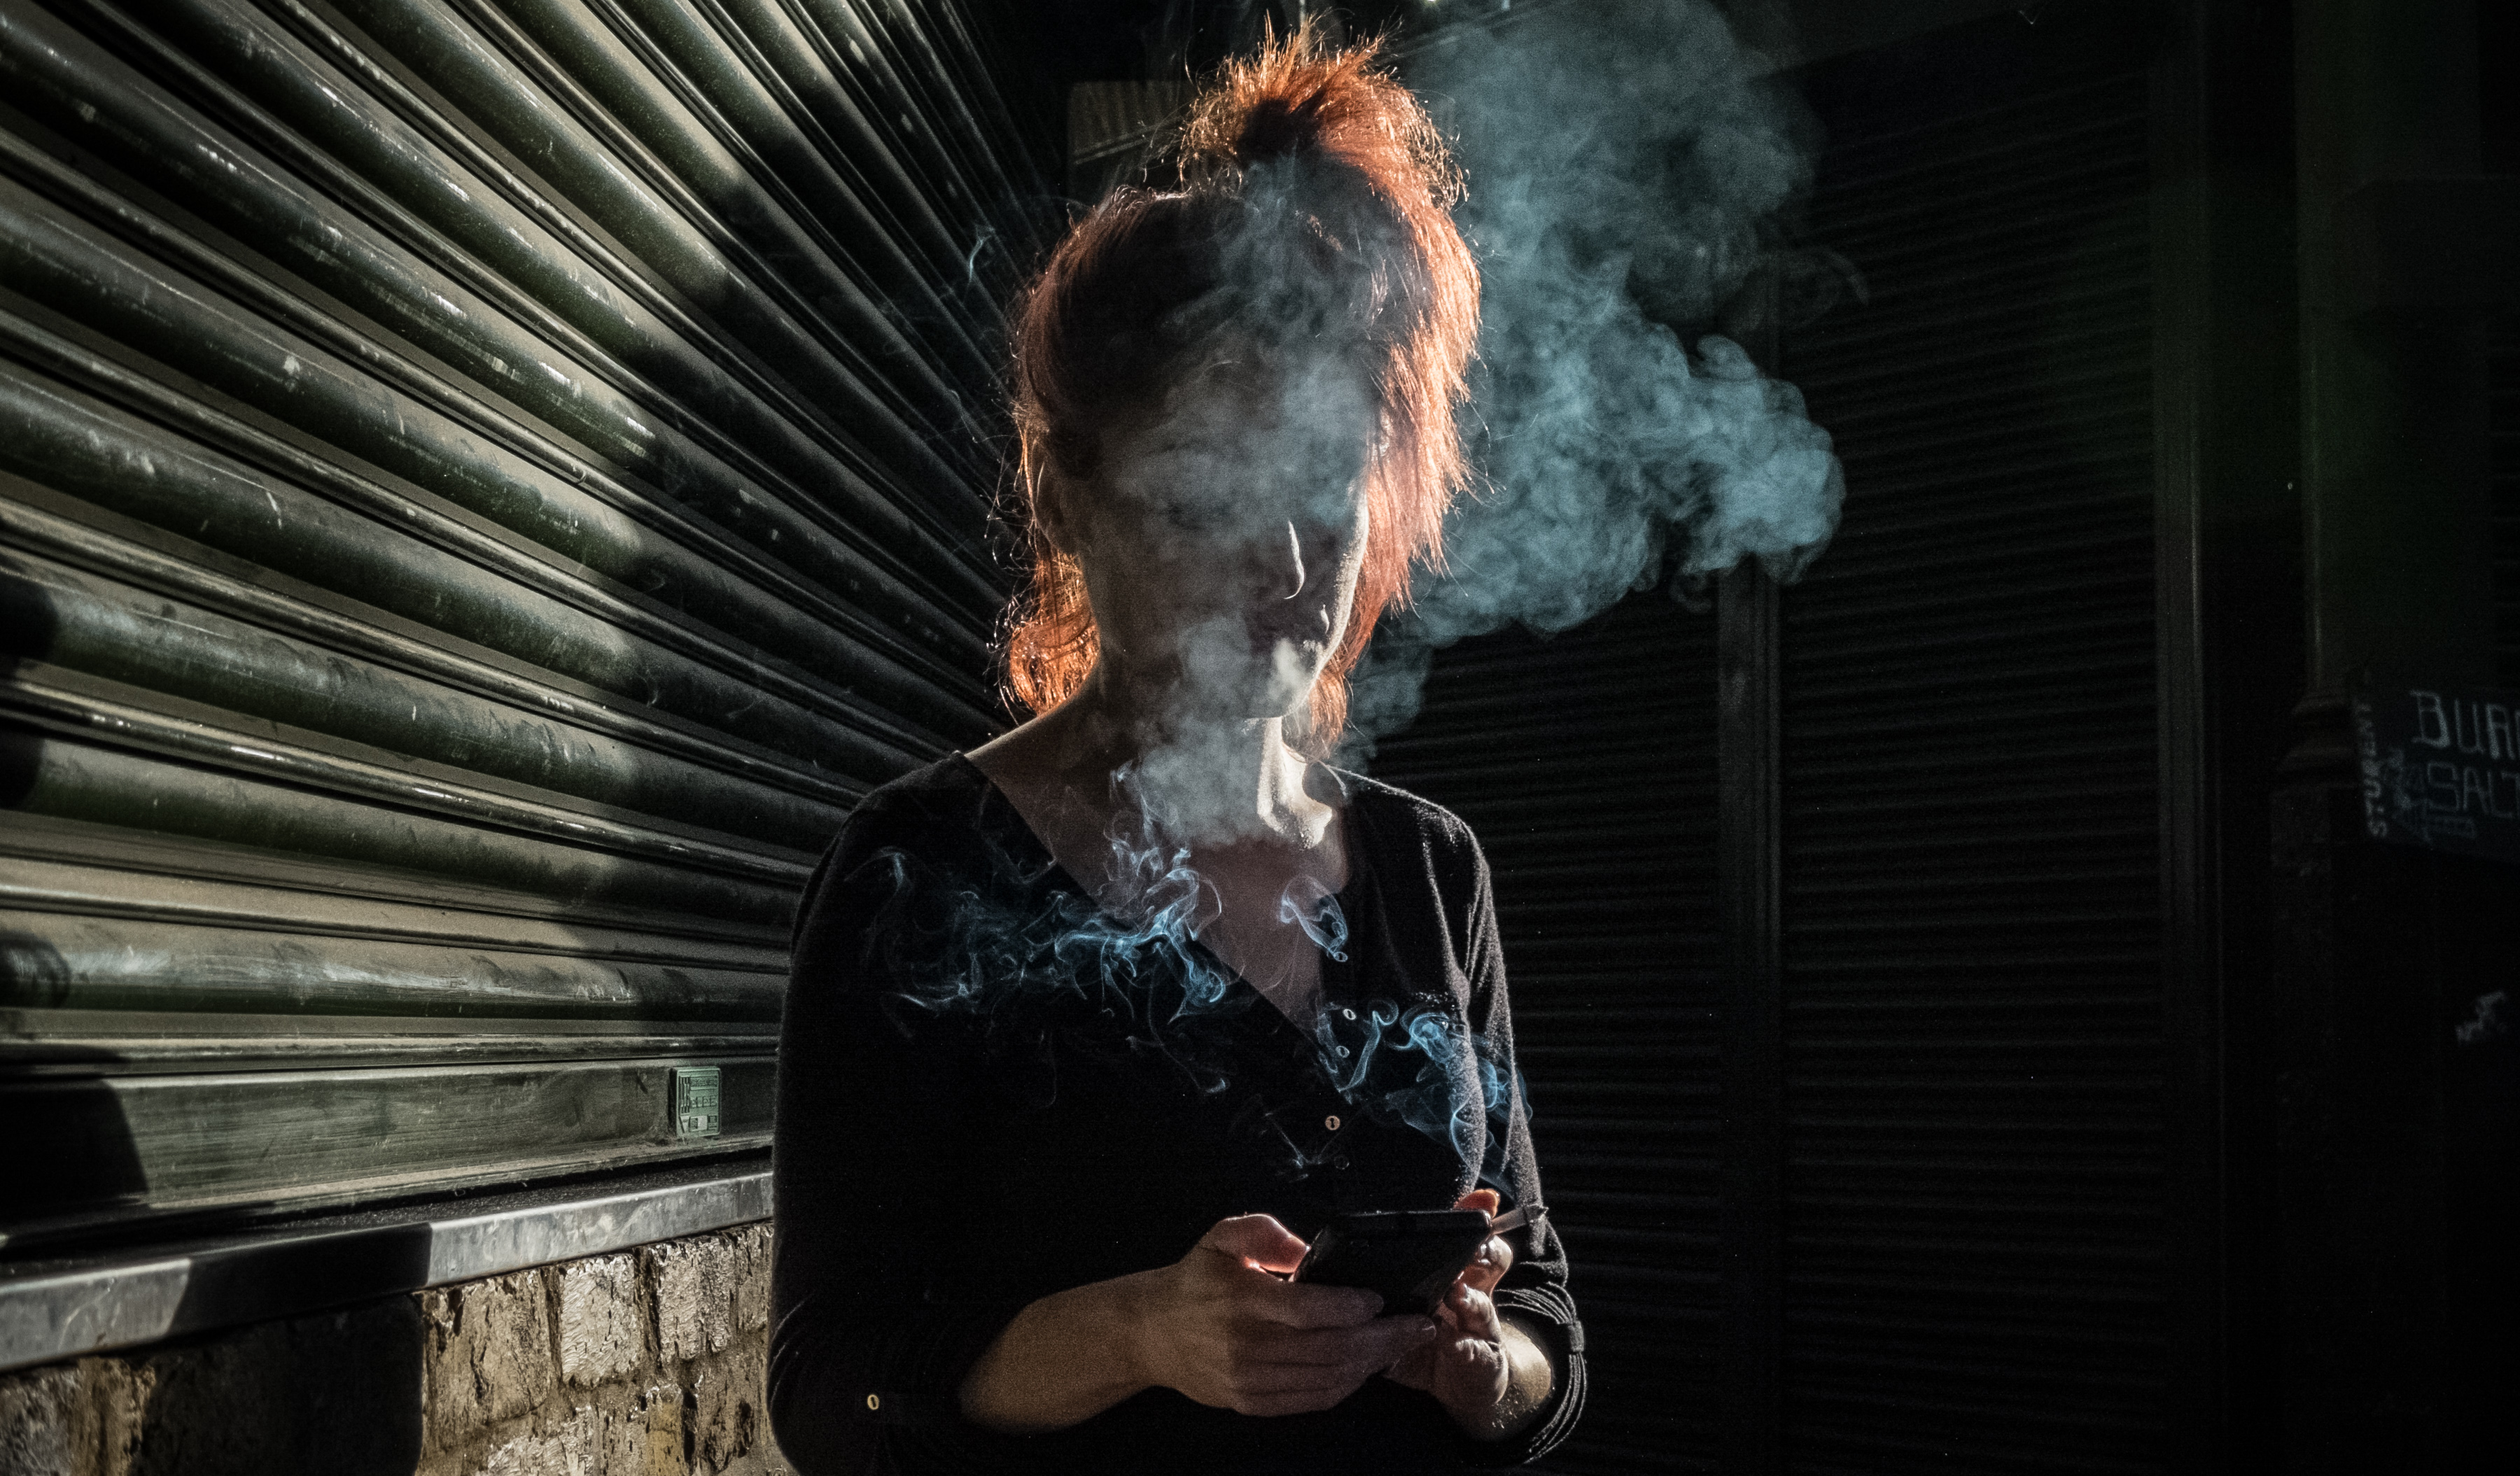 30/04/2016 32-year-old Victoria Venteo takes a cigarette break towards the end of her shift as a waitress at Bedales wine bar in Borough Market, Southwark, London, UK. Photo © Tim Gander 2016. All rights reserved.